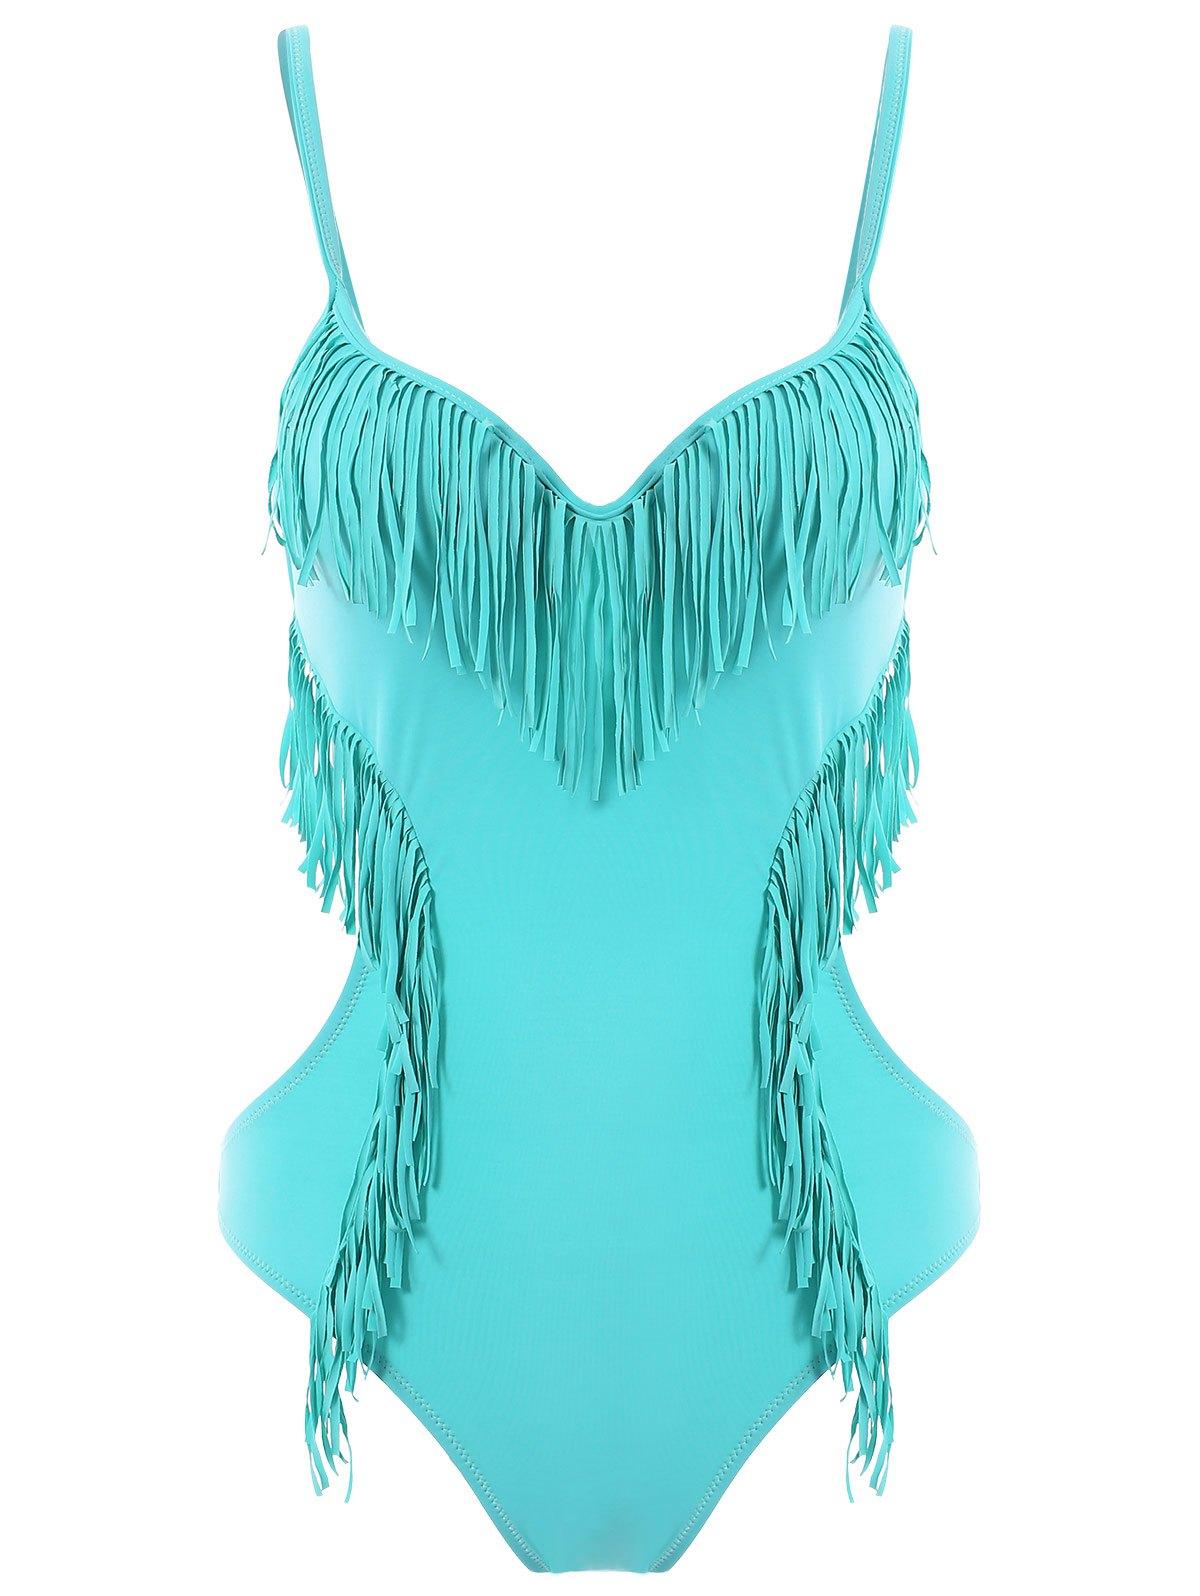 Trendy Tassles Spaghetti Strap Candy Color One Piece Swimwear For Women